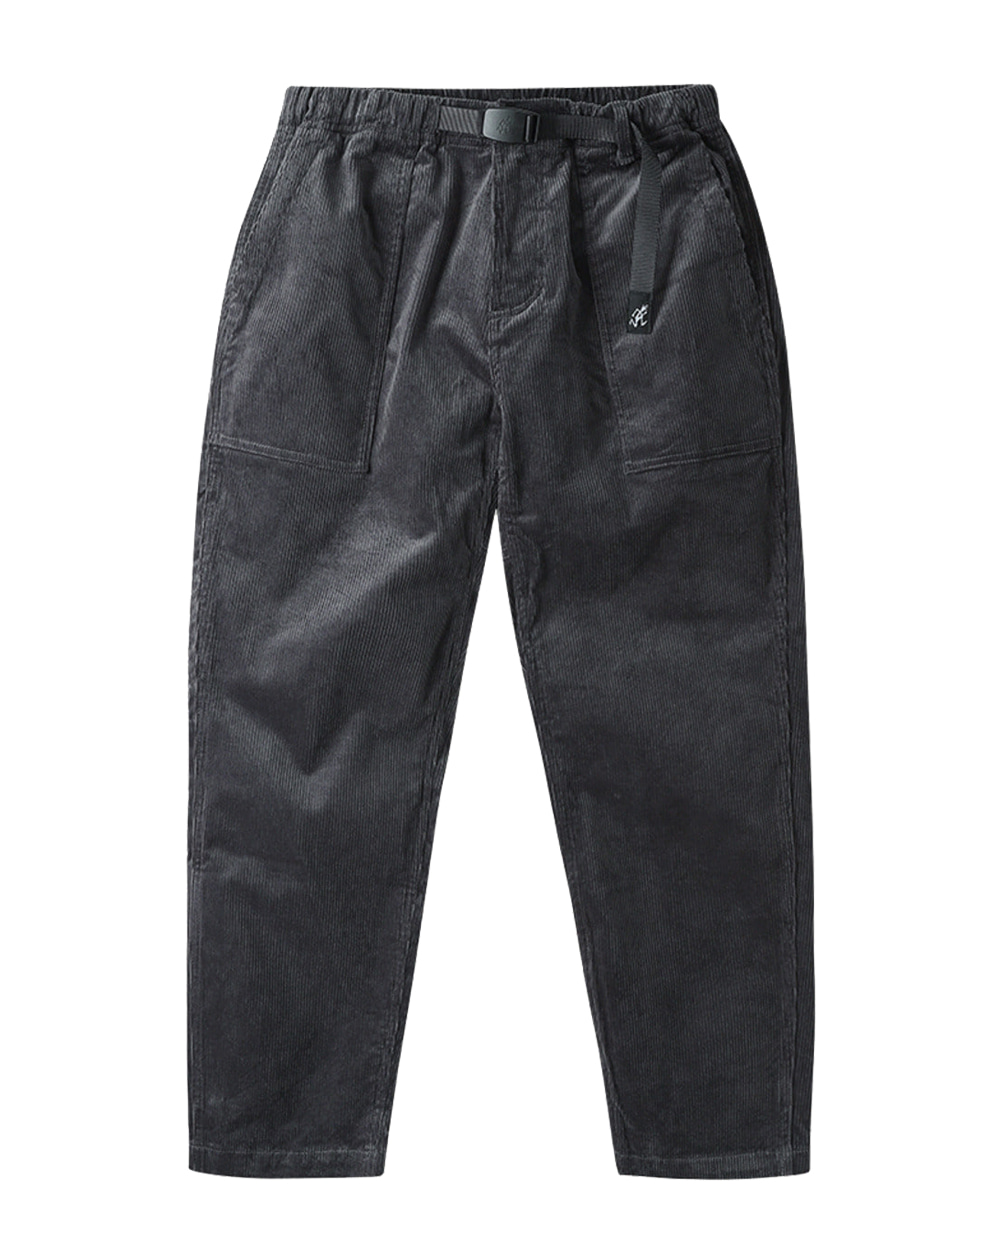 그라미치 CORDUROY LOOSE TAPERED PANTS (Charcoal)